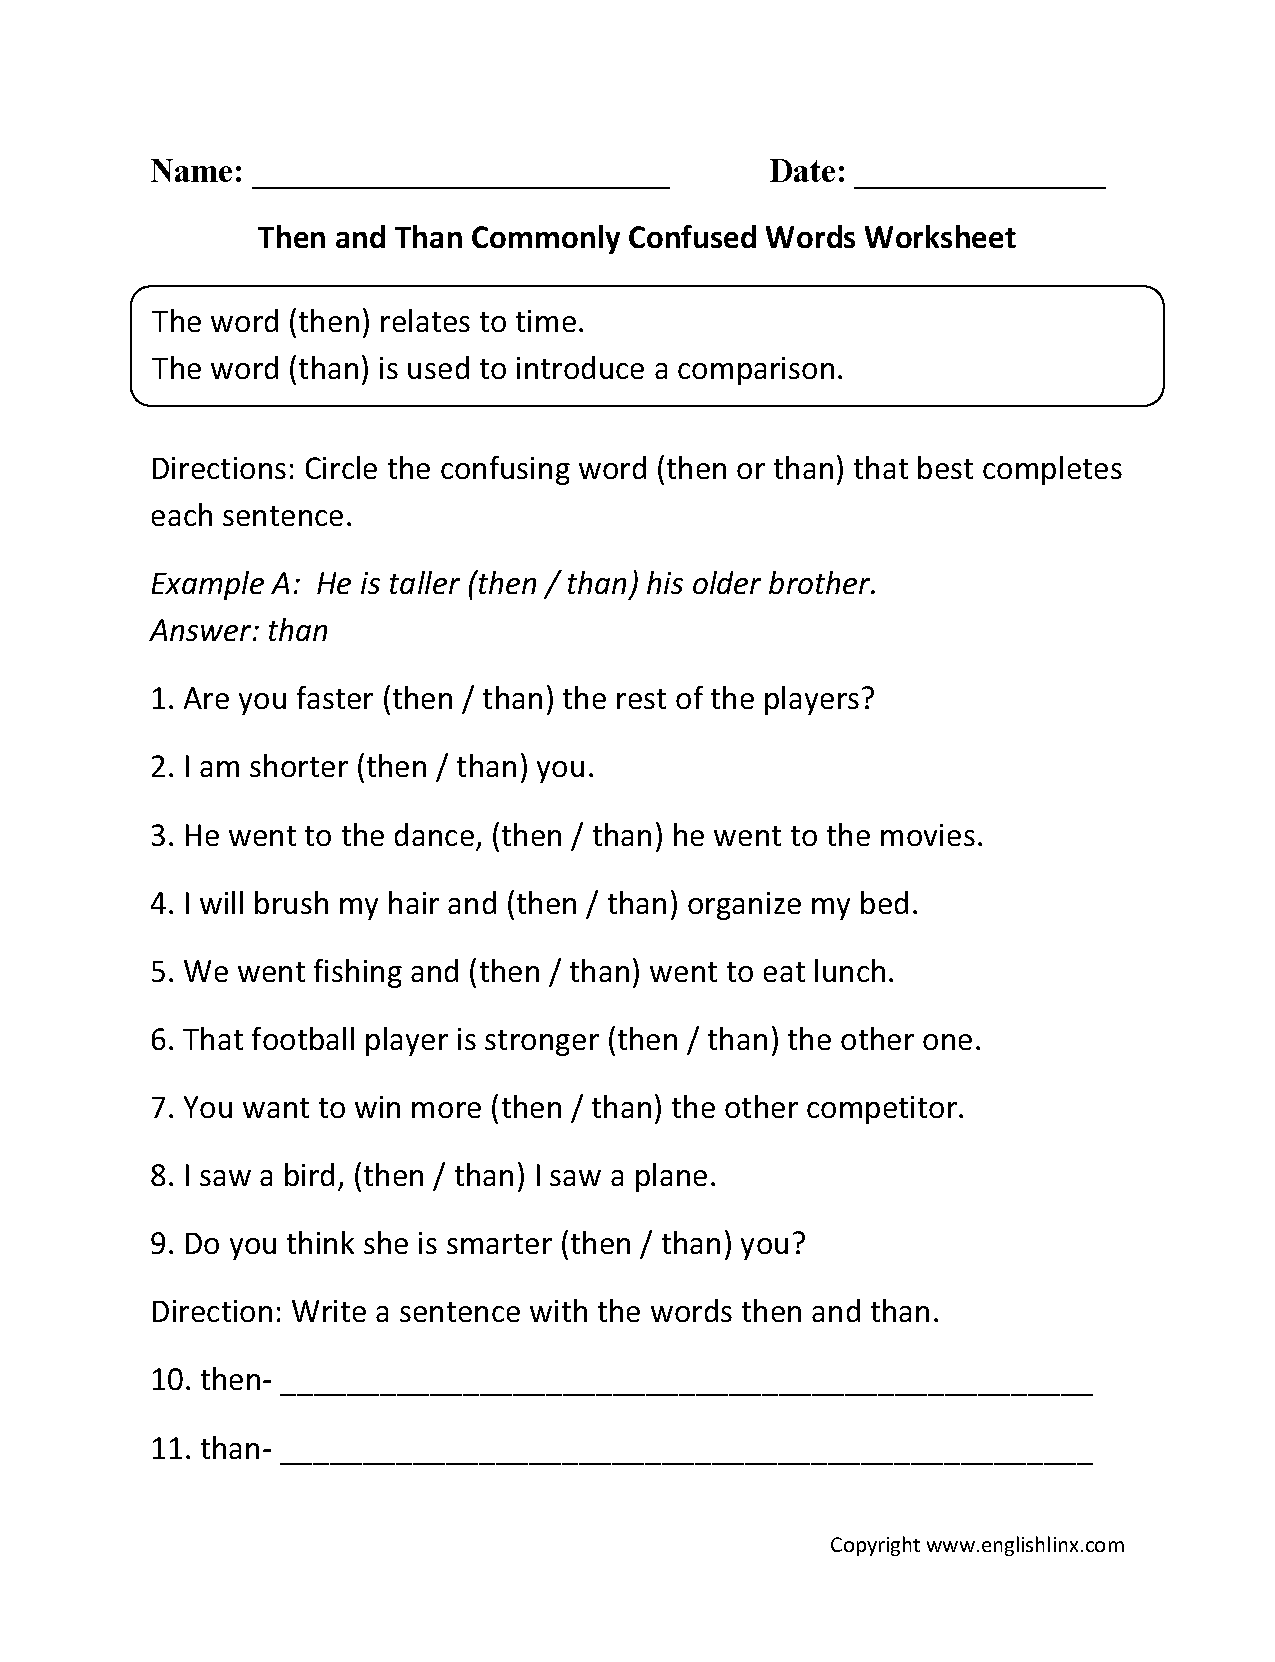 worksheet Dance Worksheets commonly confused words worksheets then vs than worksheets